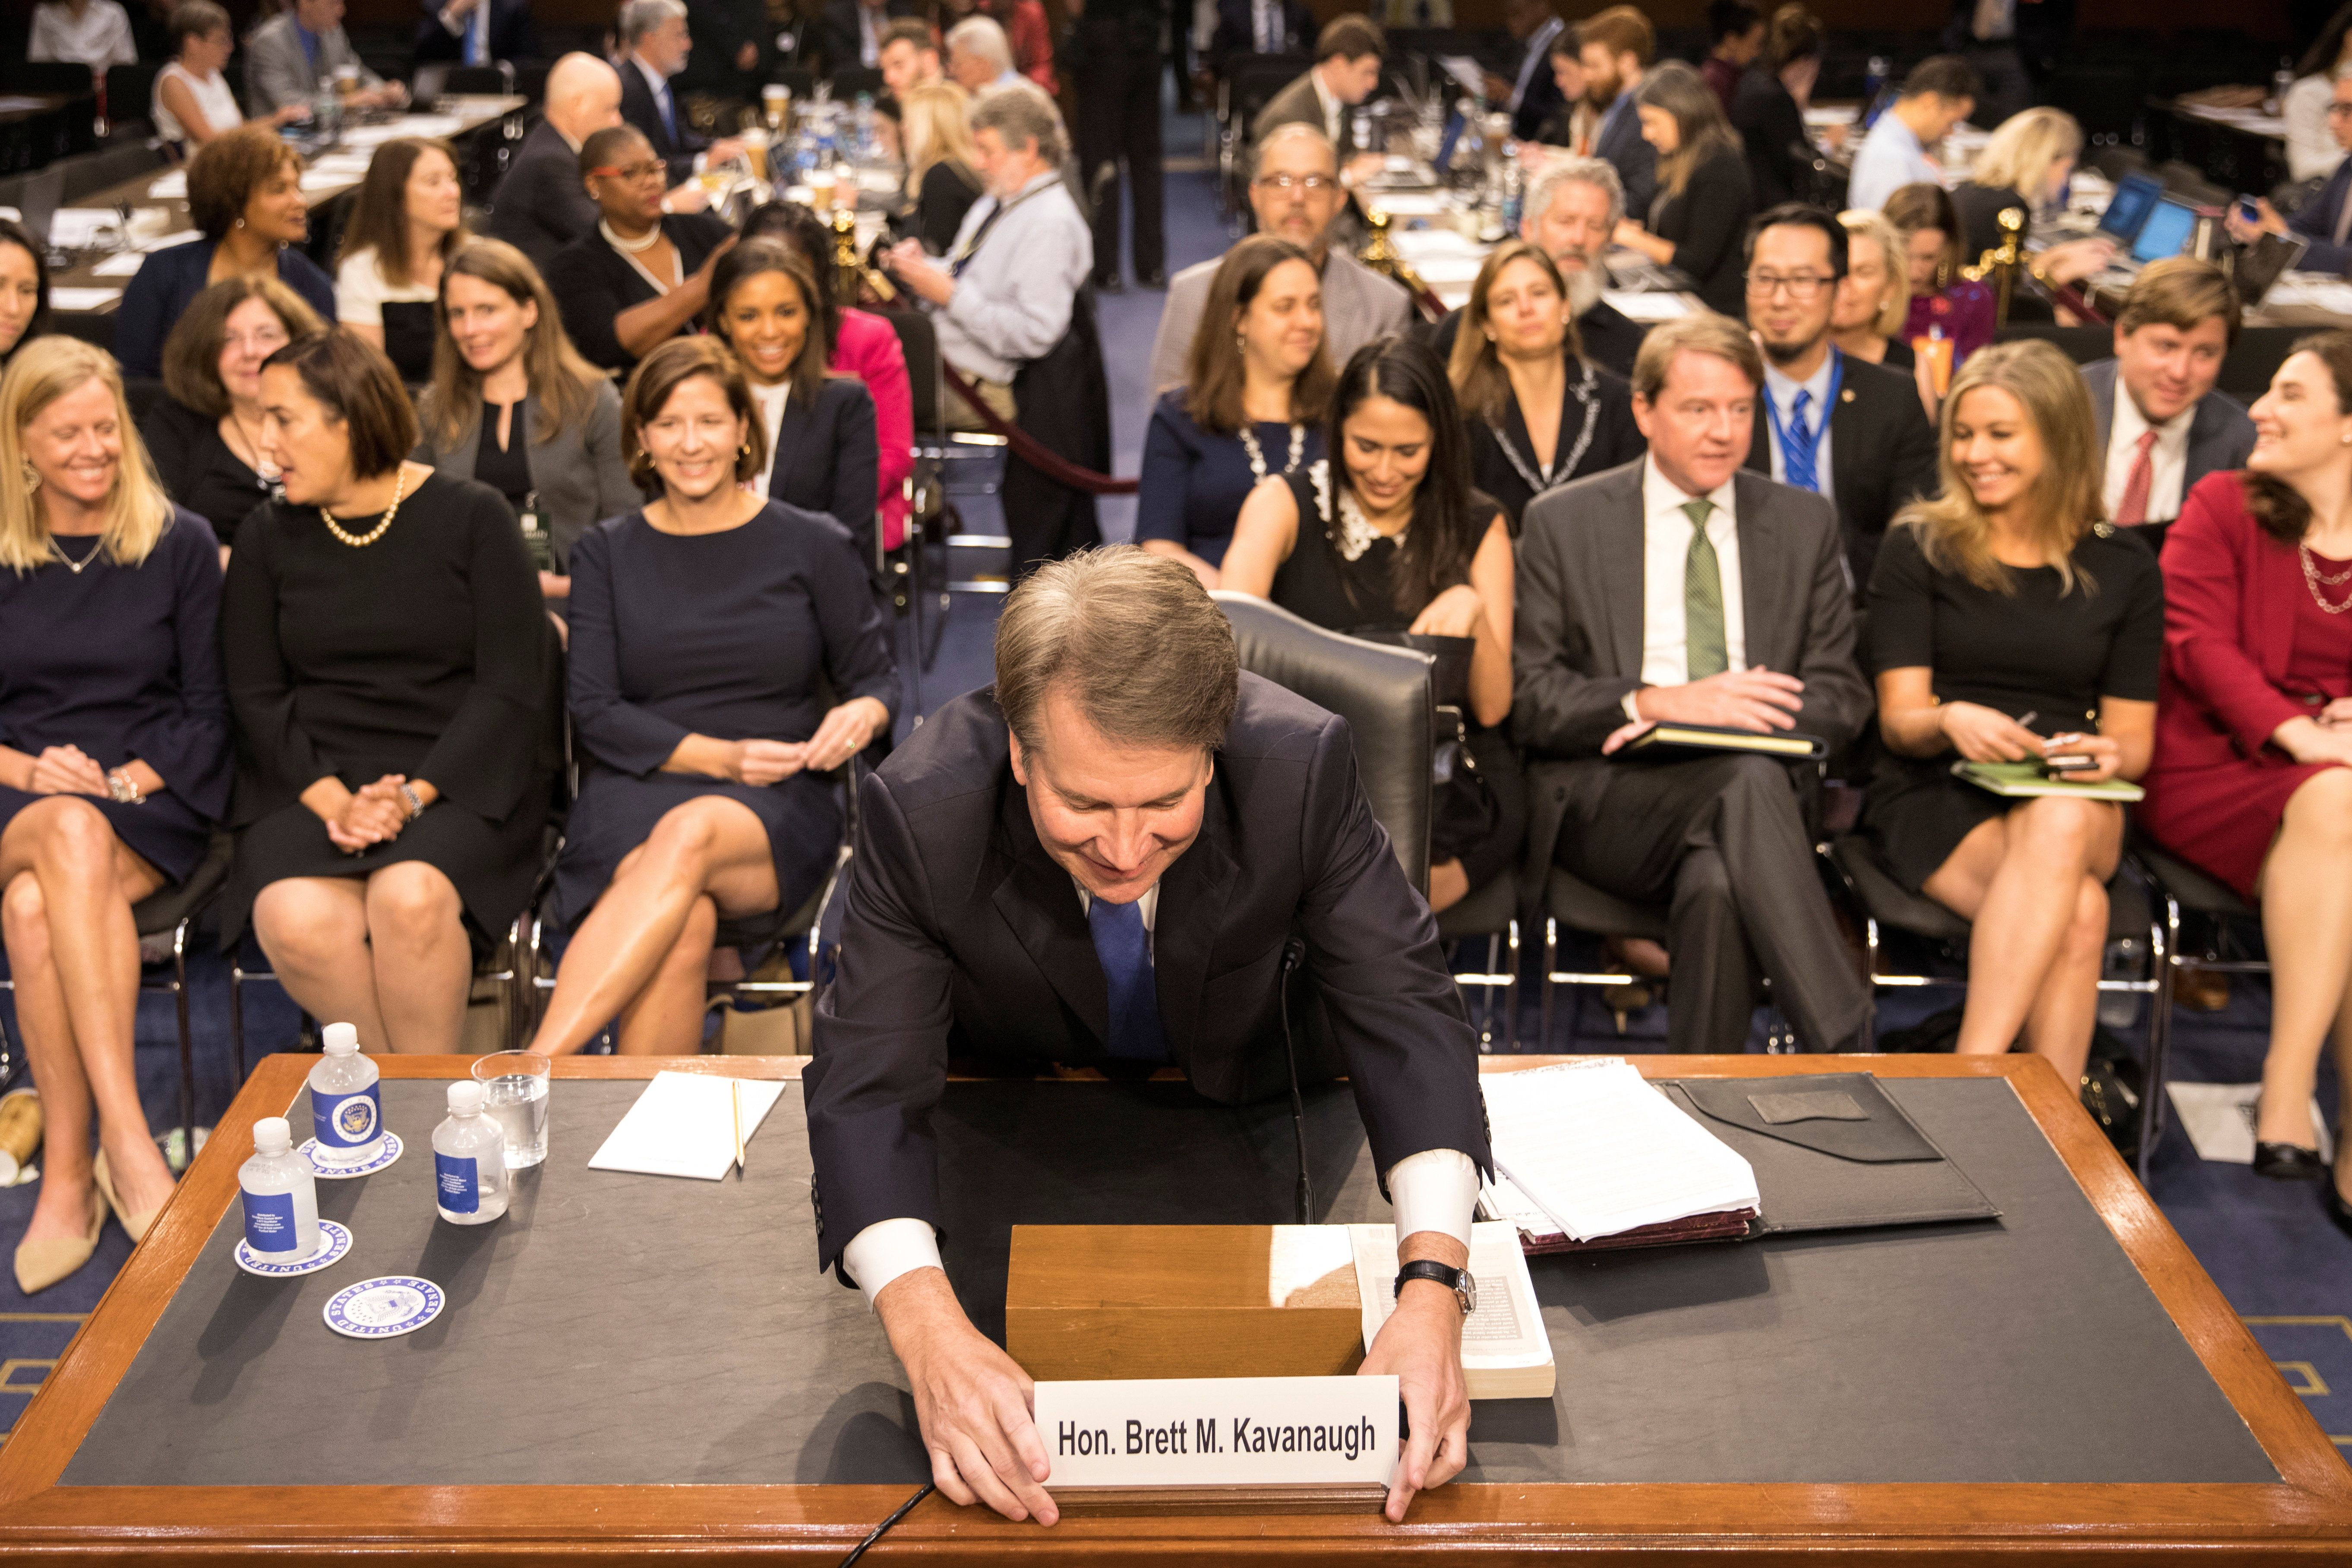 Supreme Court nominee Brett Kavanaugh prepares to testify during the third day of his confirmation hearing before the Senate Judiciary Committee on Capitol Hill in Washington, U.S., September 6, 2018. REUTERS/Alex Wroblewski